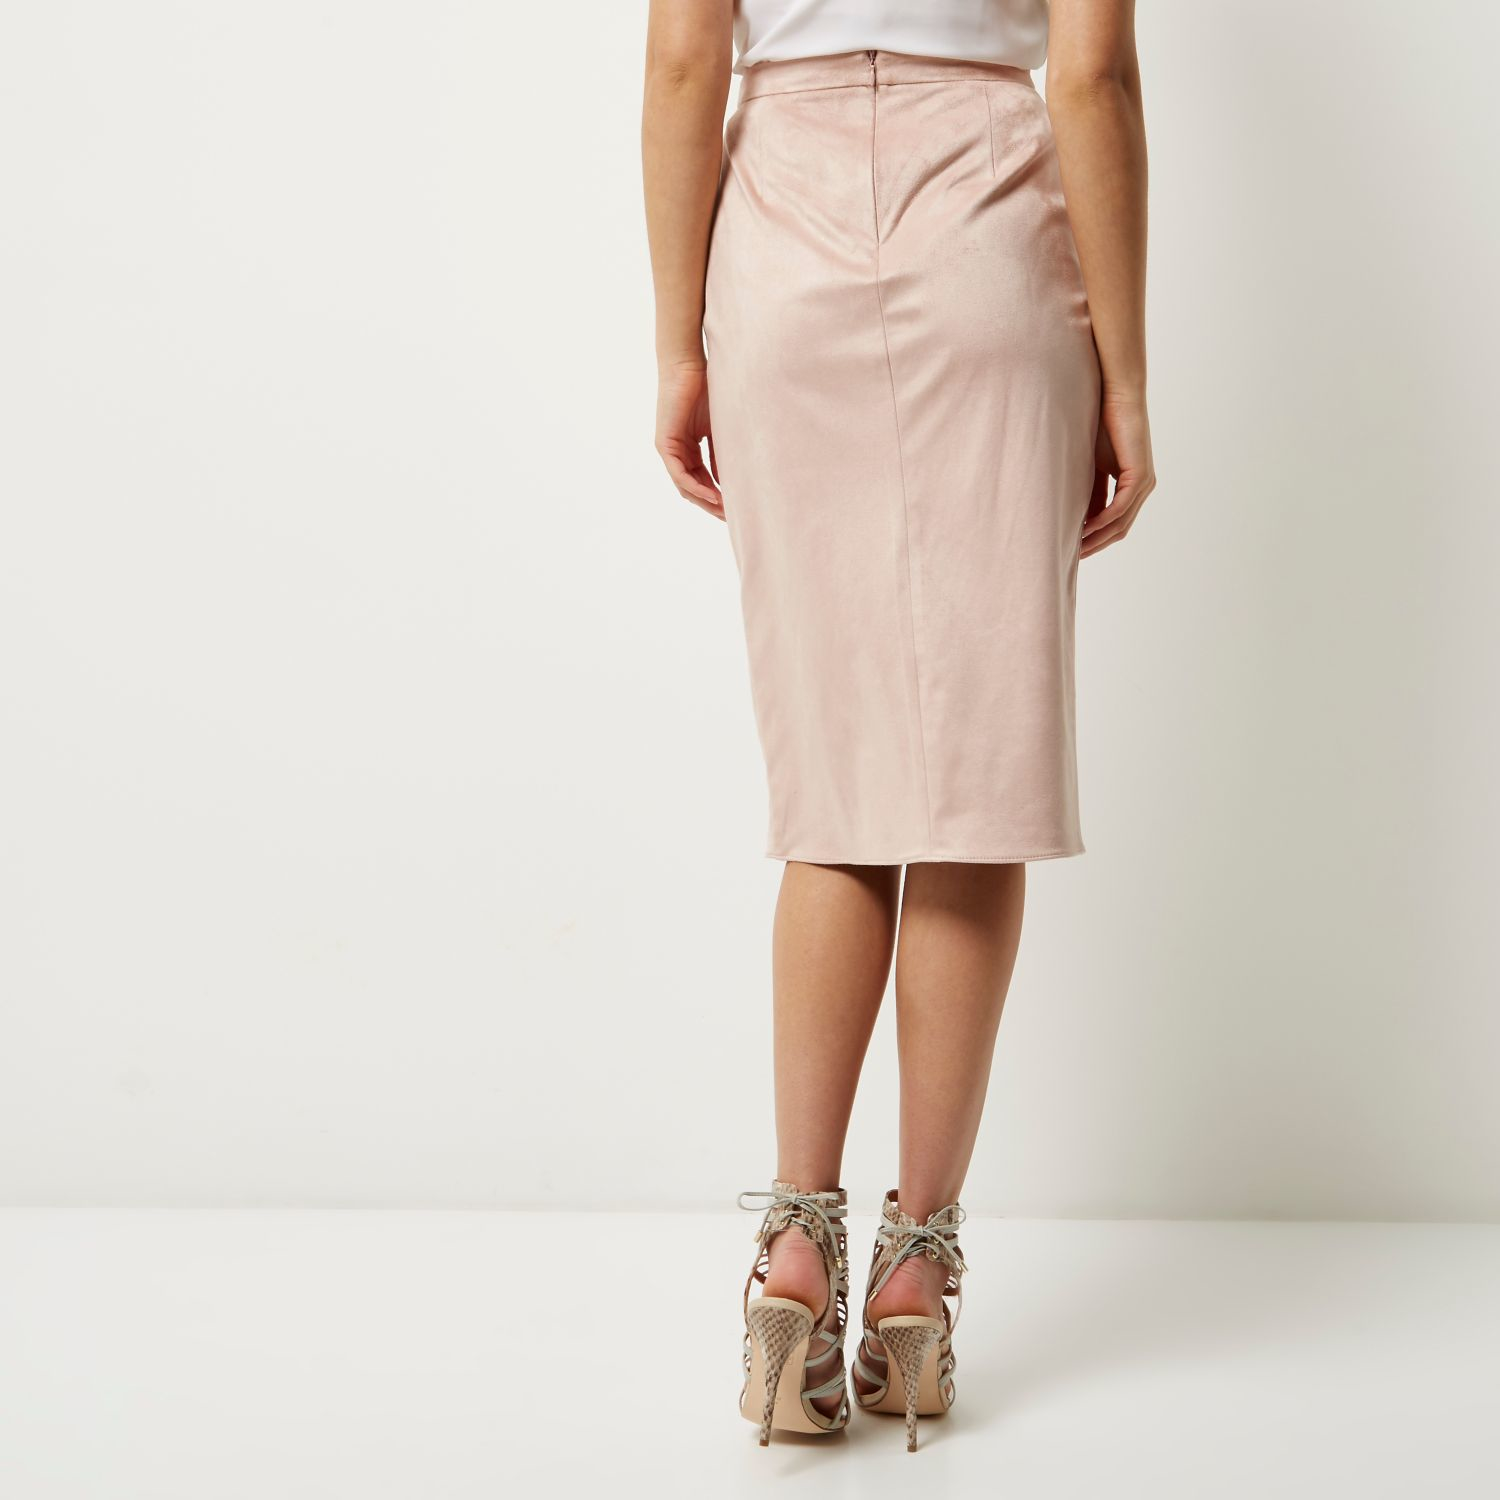 e19195a651 River Island Light Pink Faux Suede Wrap Pencil Skirt in Pink - Lyst